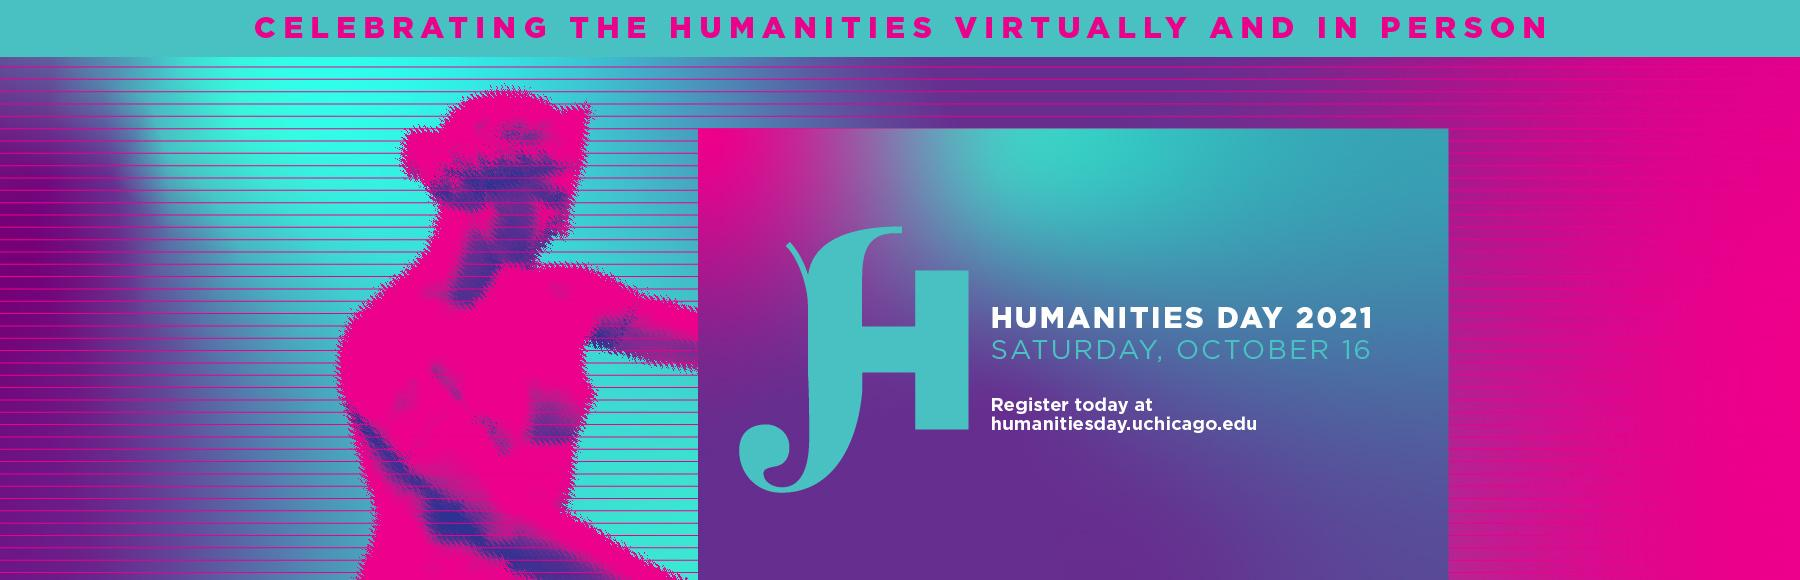 Humanities Day 2021 graphic